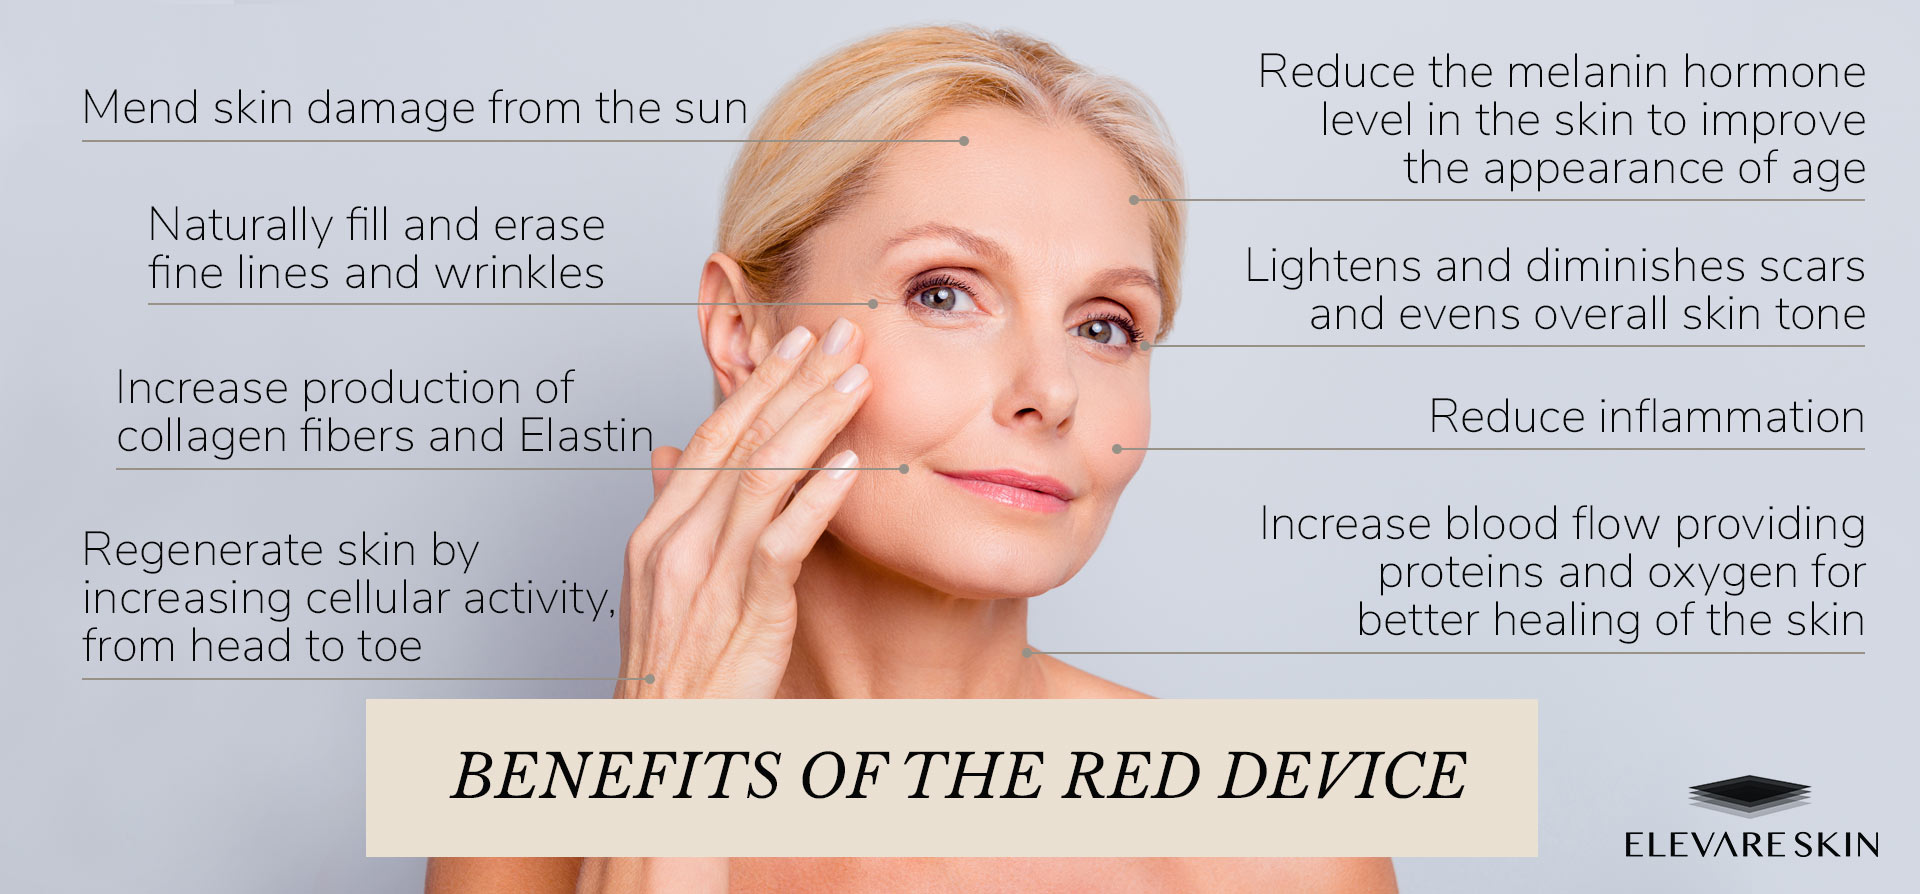 Benefits of the RED device